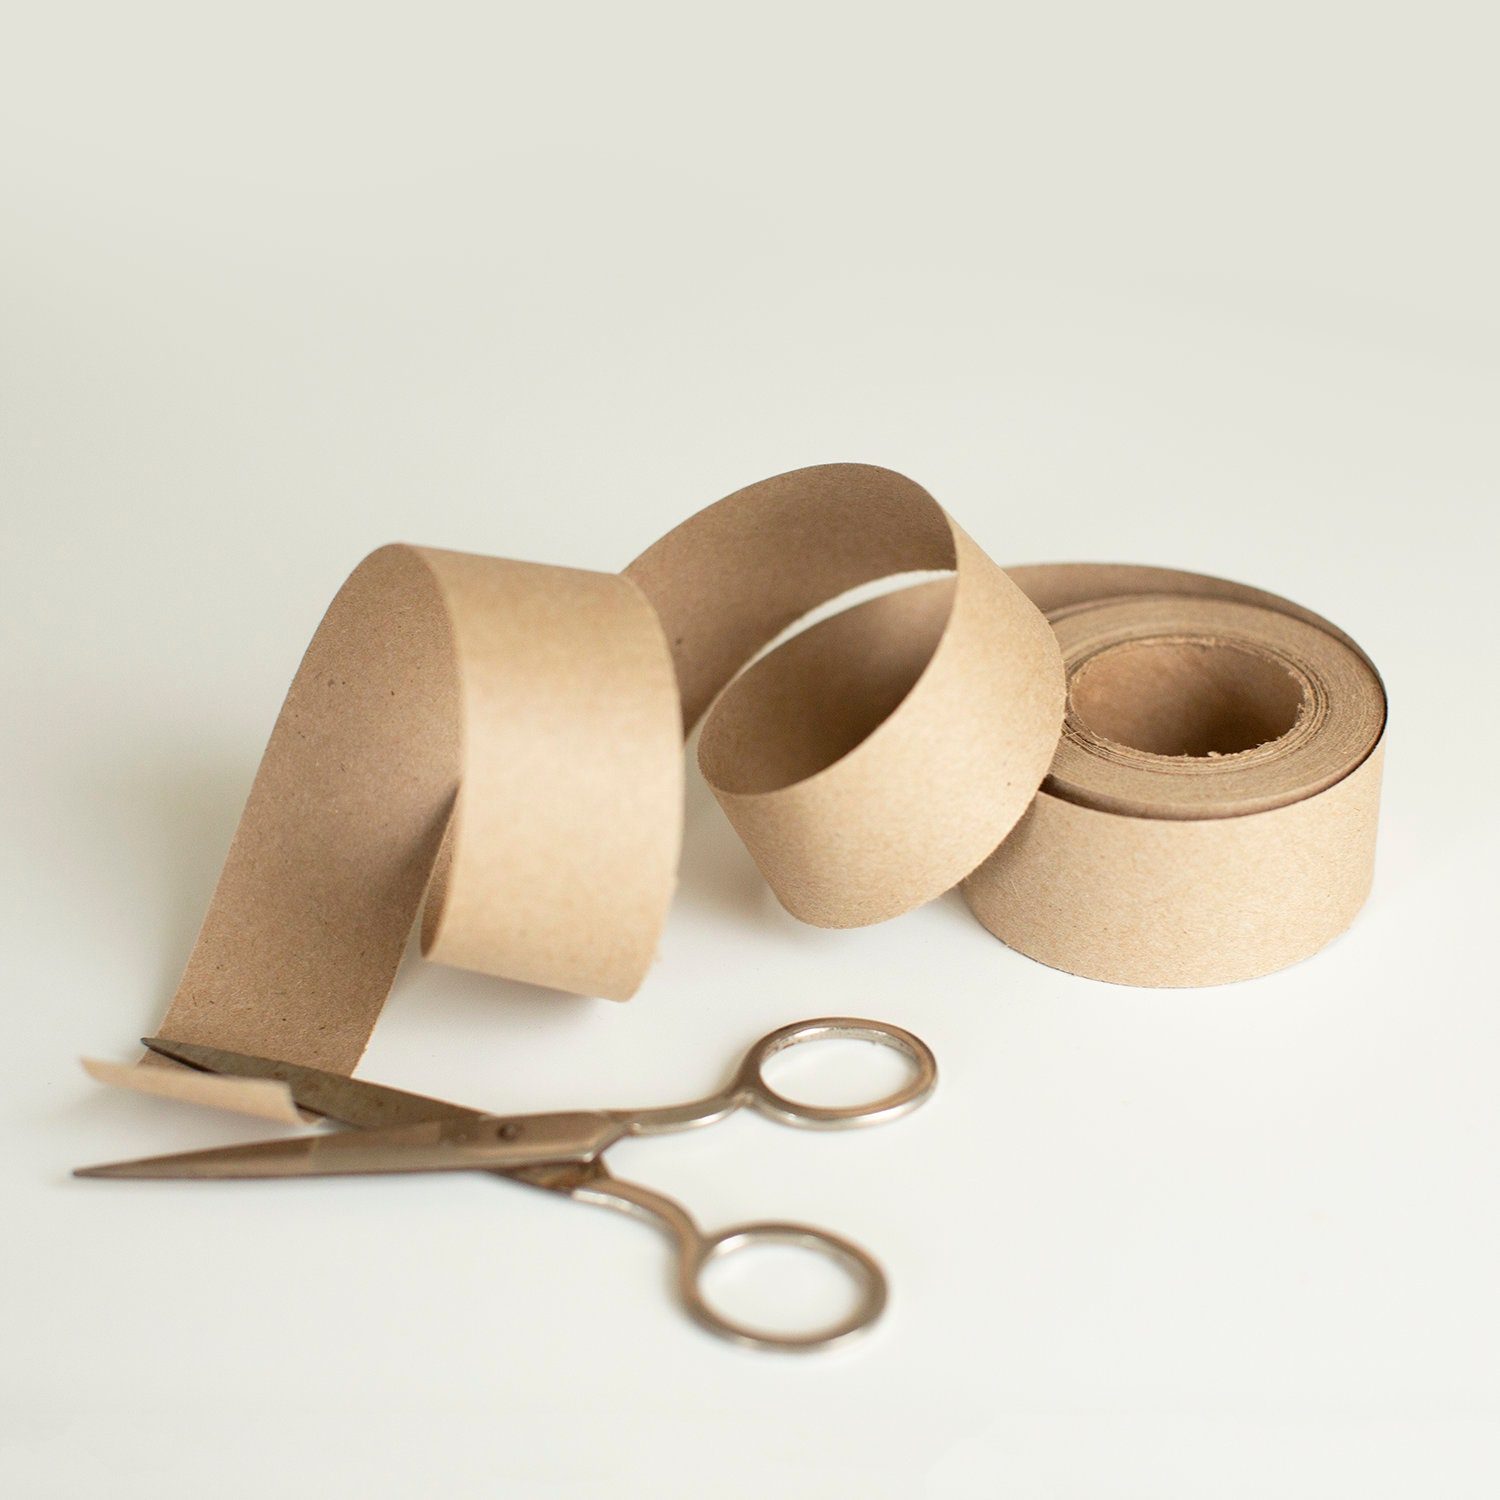 50 Yards Kraft Binding Paper Wrapping Ribbon Belly Band Paper Soap Bands Stationary Wrap Cutlery Band Wedding Napkin Ring